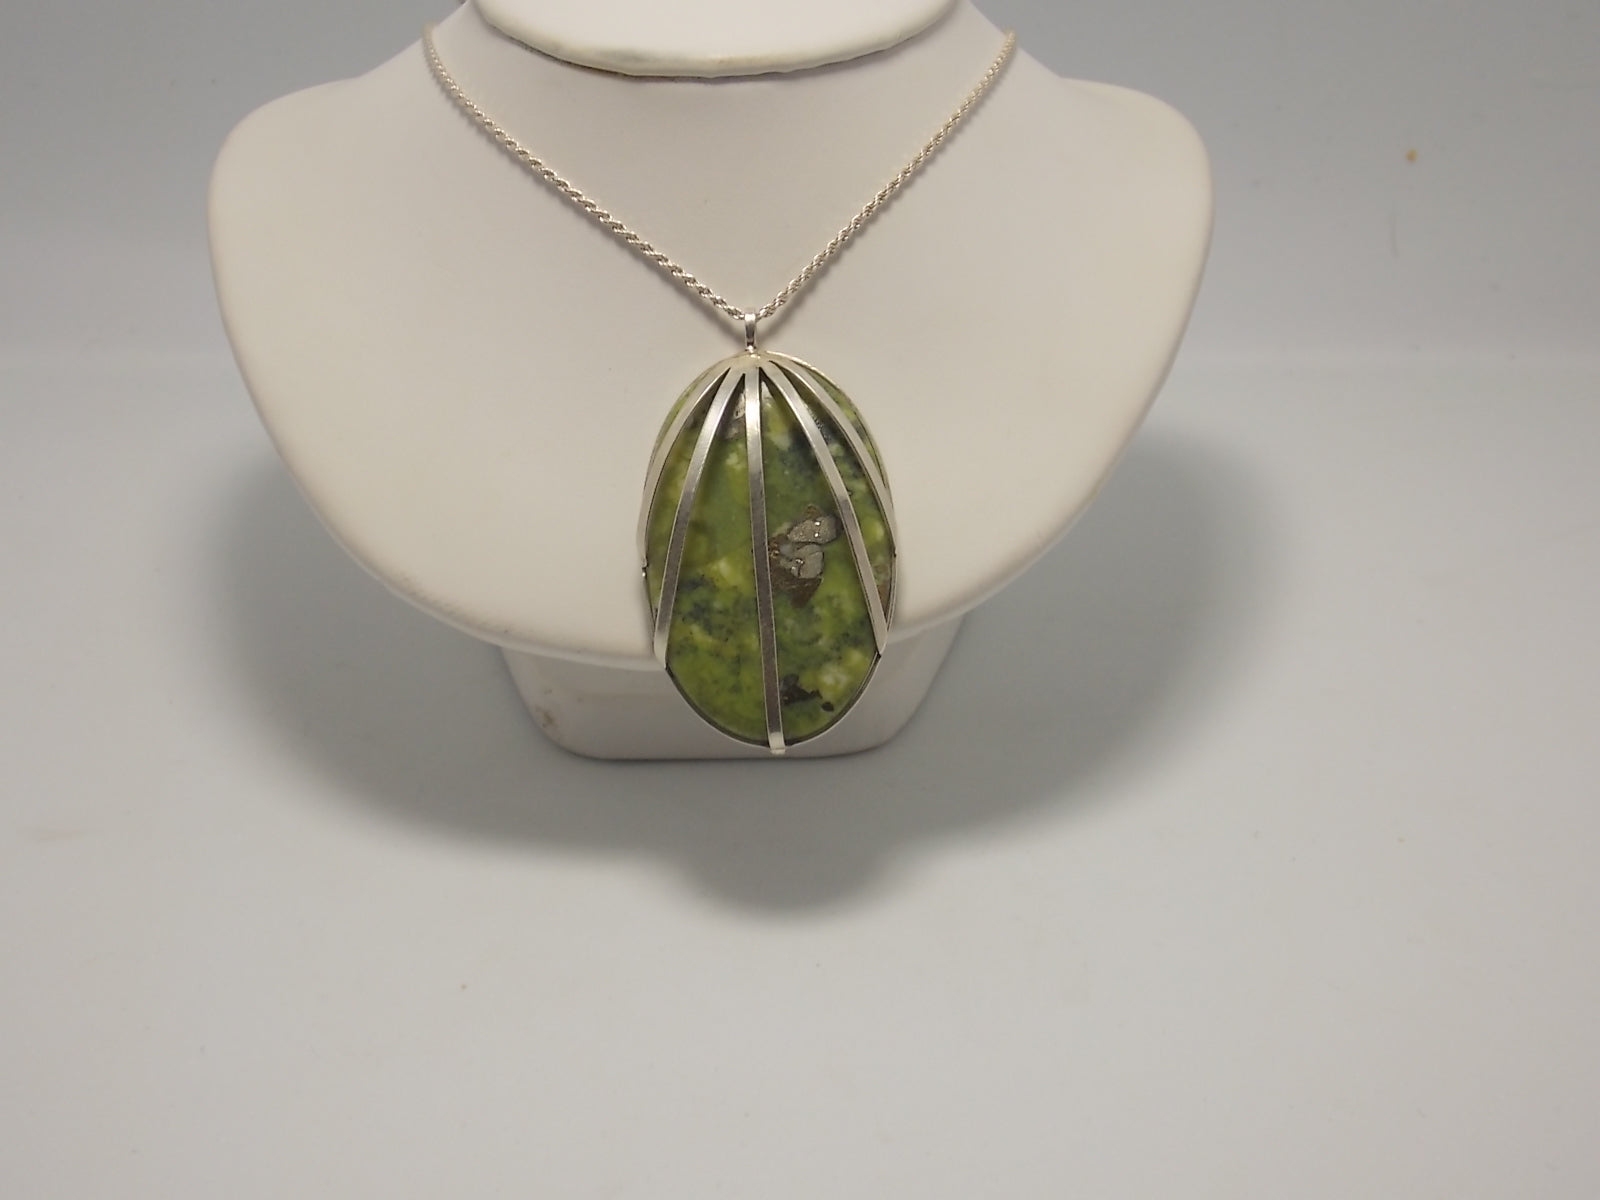 Sterling silver and serpentine and piryte pendant by Balbina Meyer